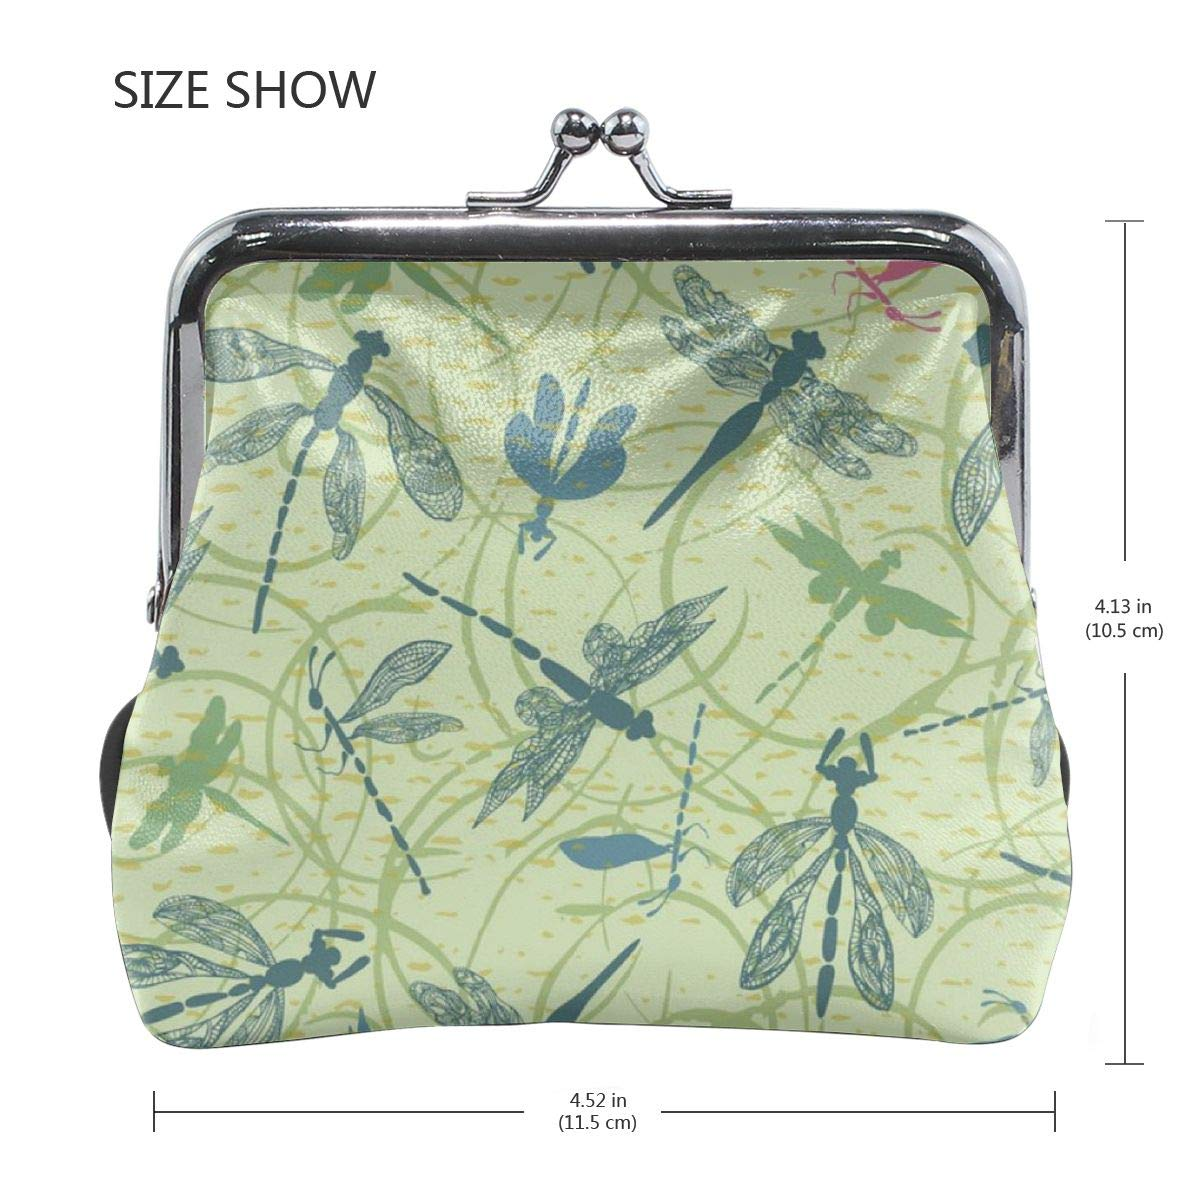 Yunshm Dragonfly Silhouettes With Lace Details Customized Leather Classic Floral Coin Purse Clutch Pouch Wallet For Womens